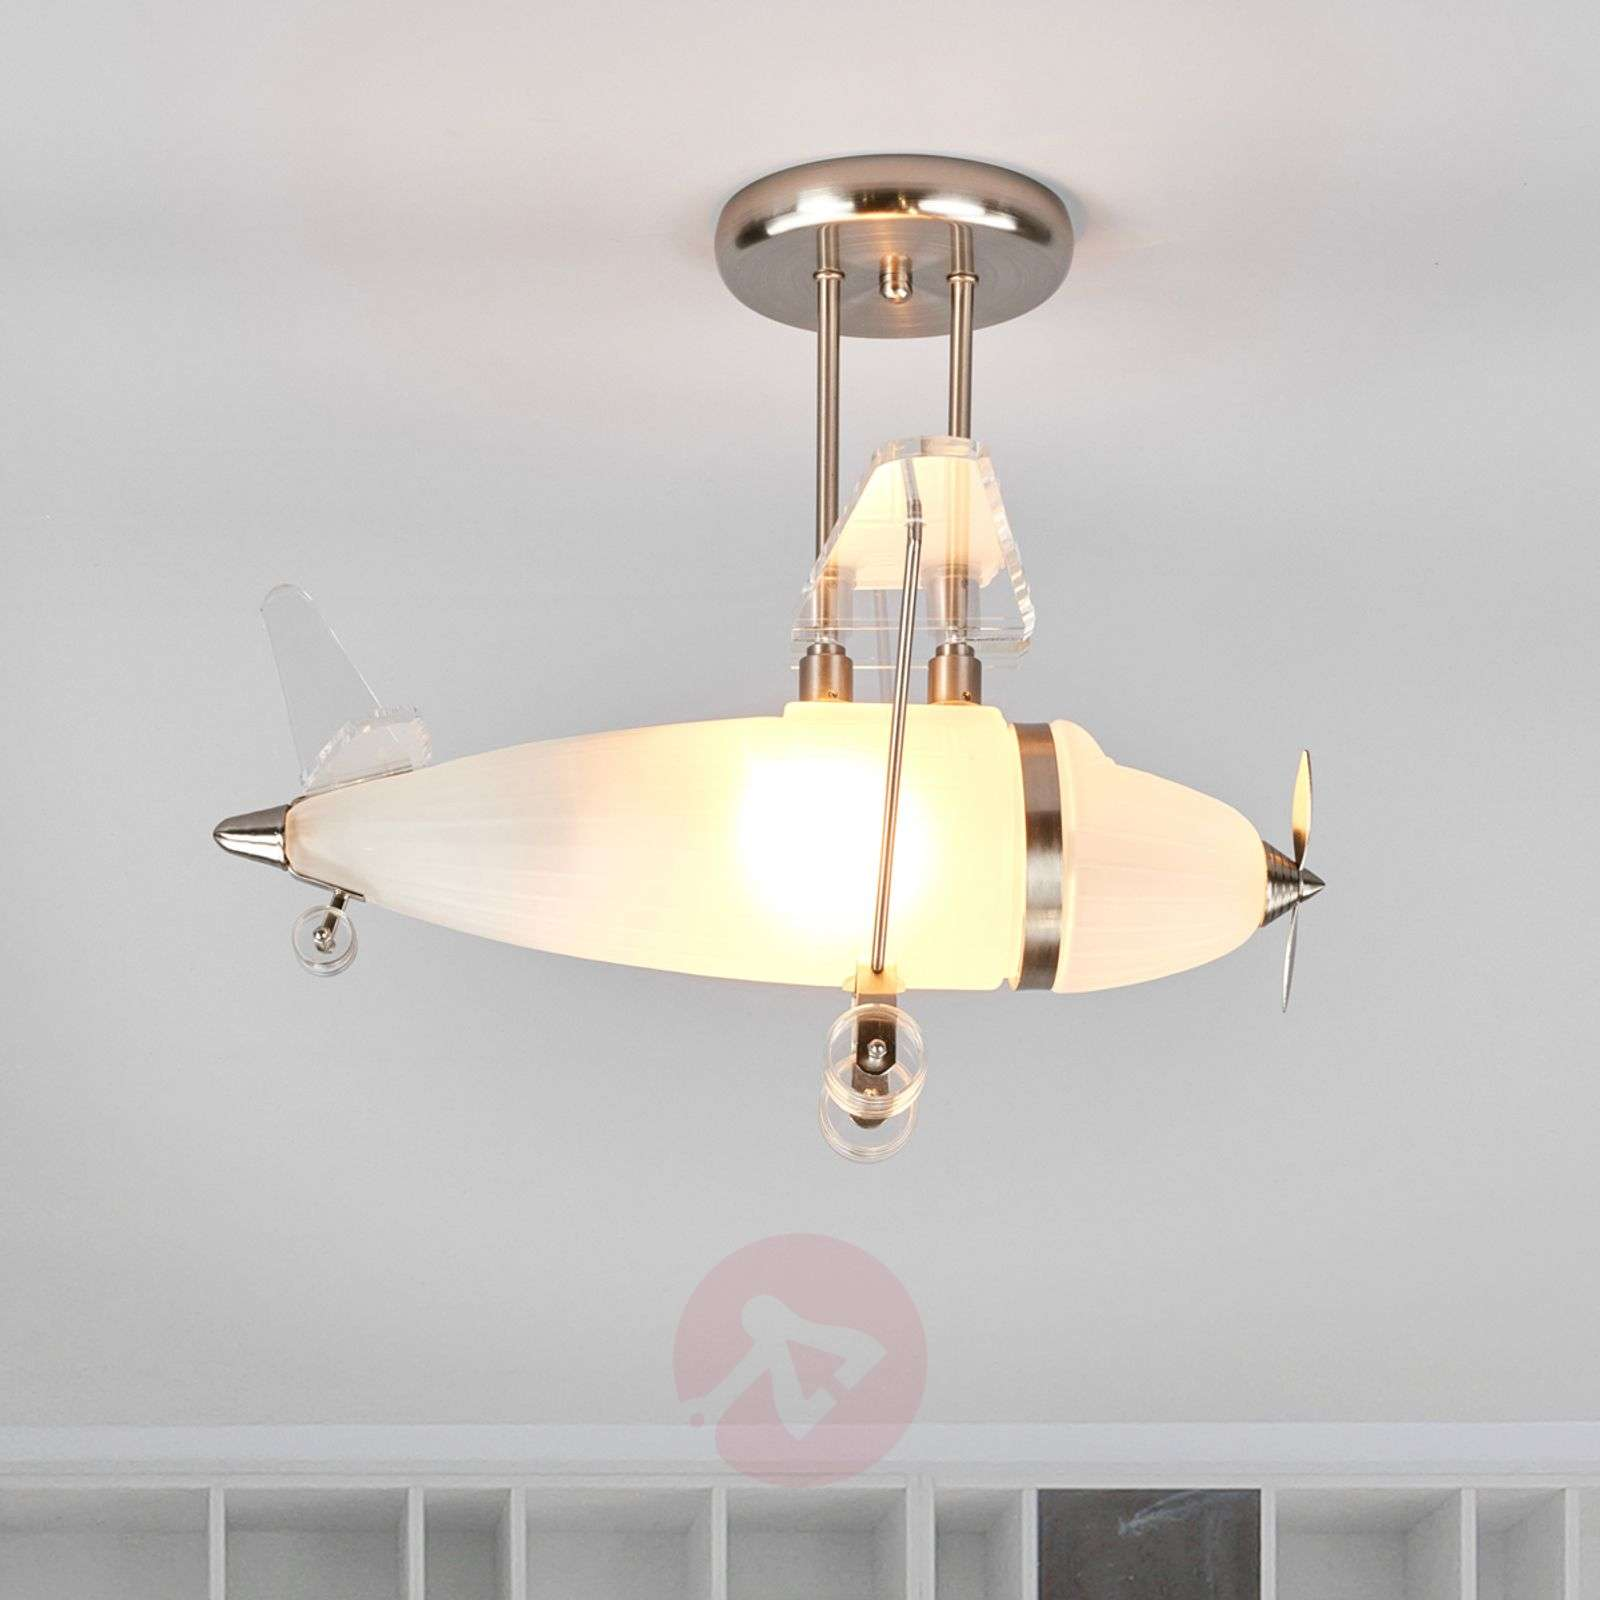 Decorative ceiling light Flya, aeroplane form-8570182-03